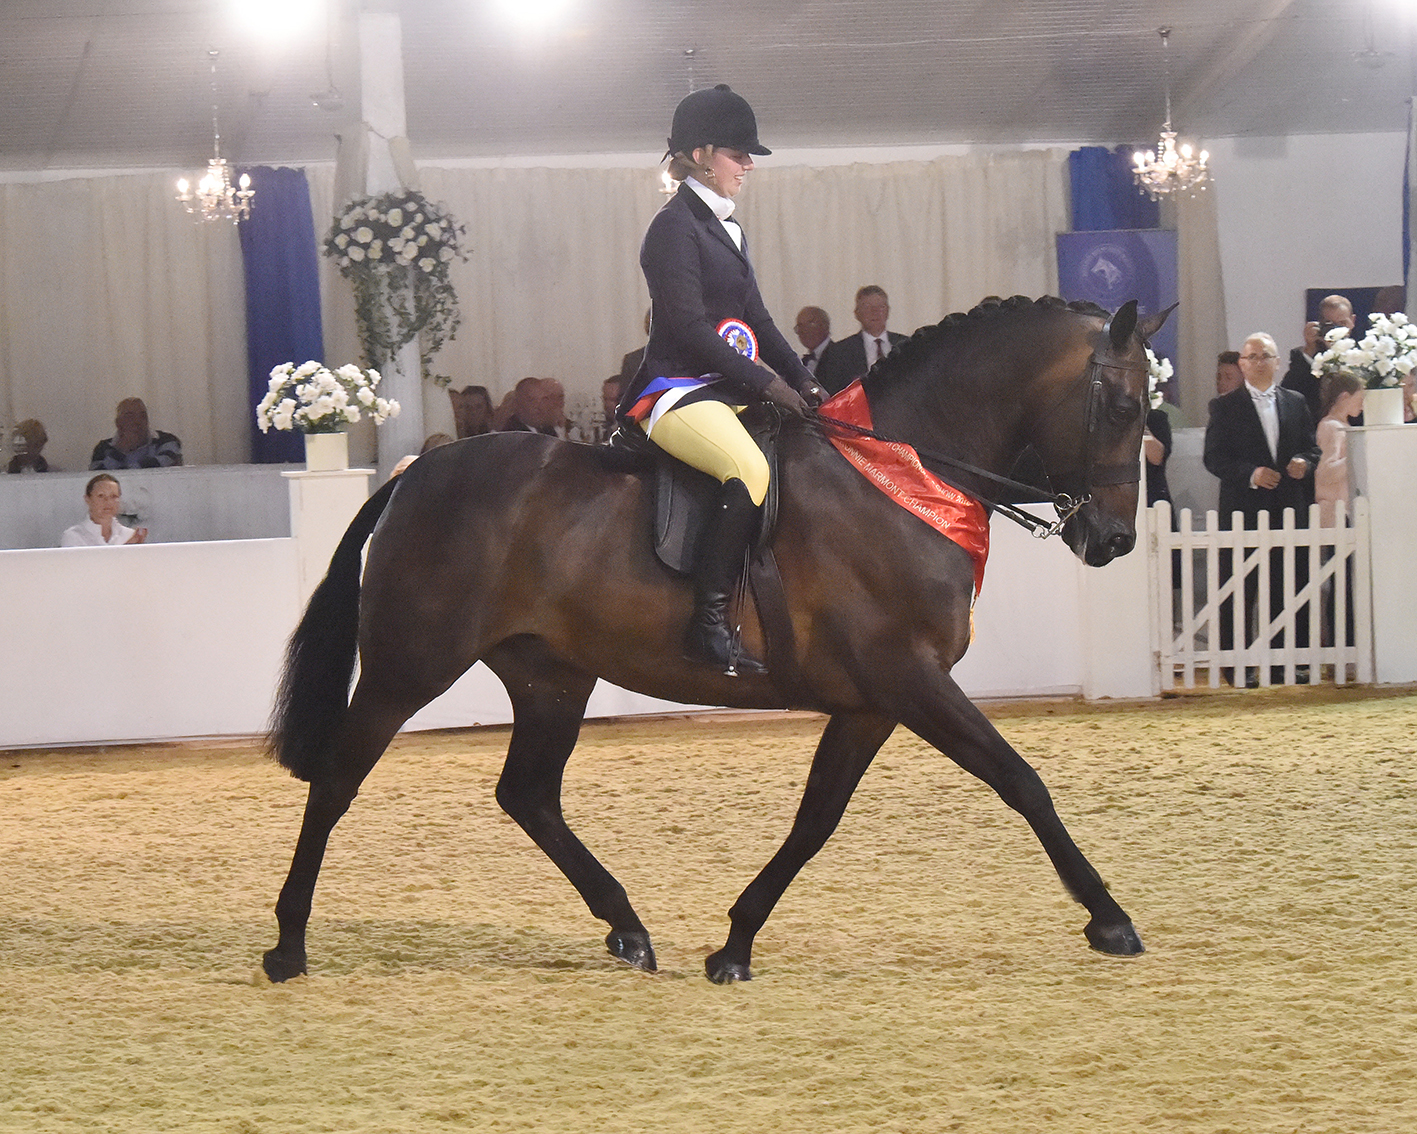 Cassie Hartley and Archeval Boutique Amadeus - Championship Showing Success for Cassie Hartley